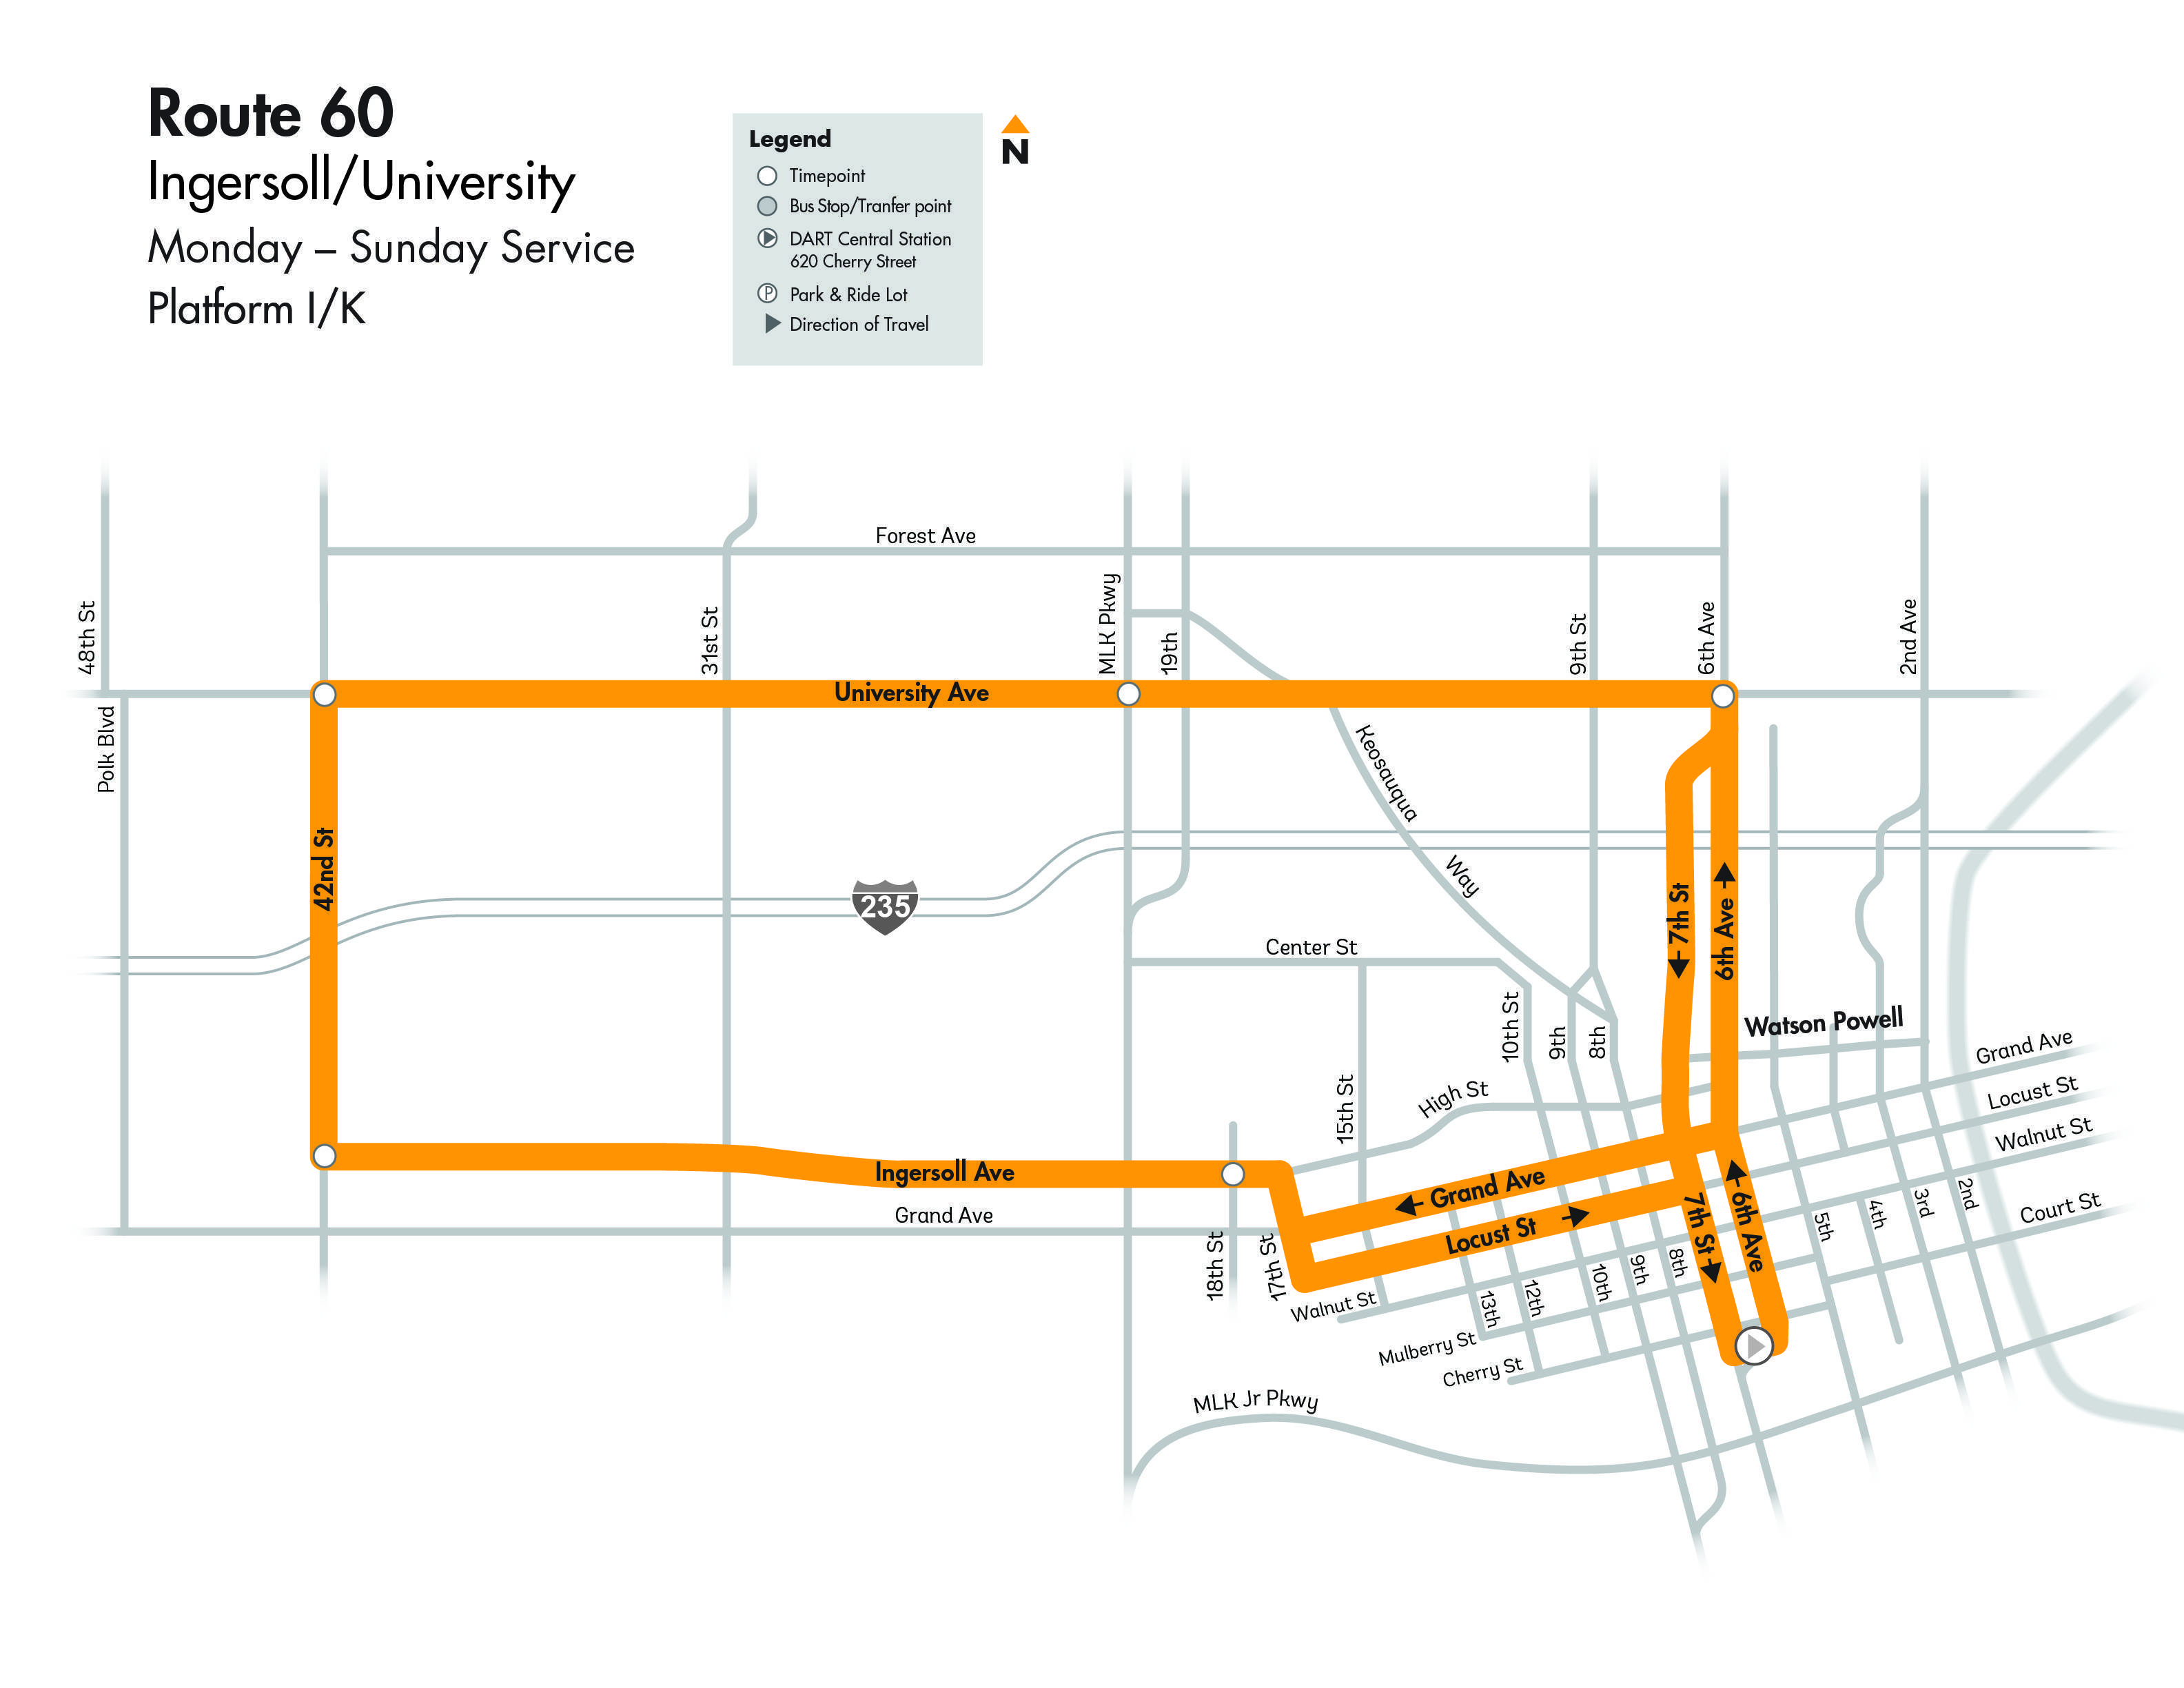 DART Local Route 60 - Ingersoll/University Map